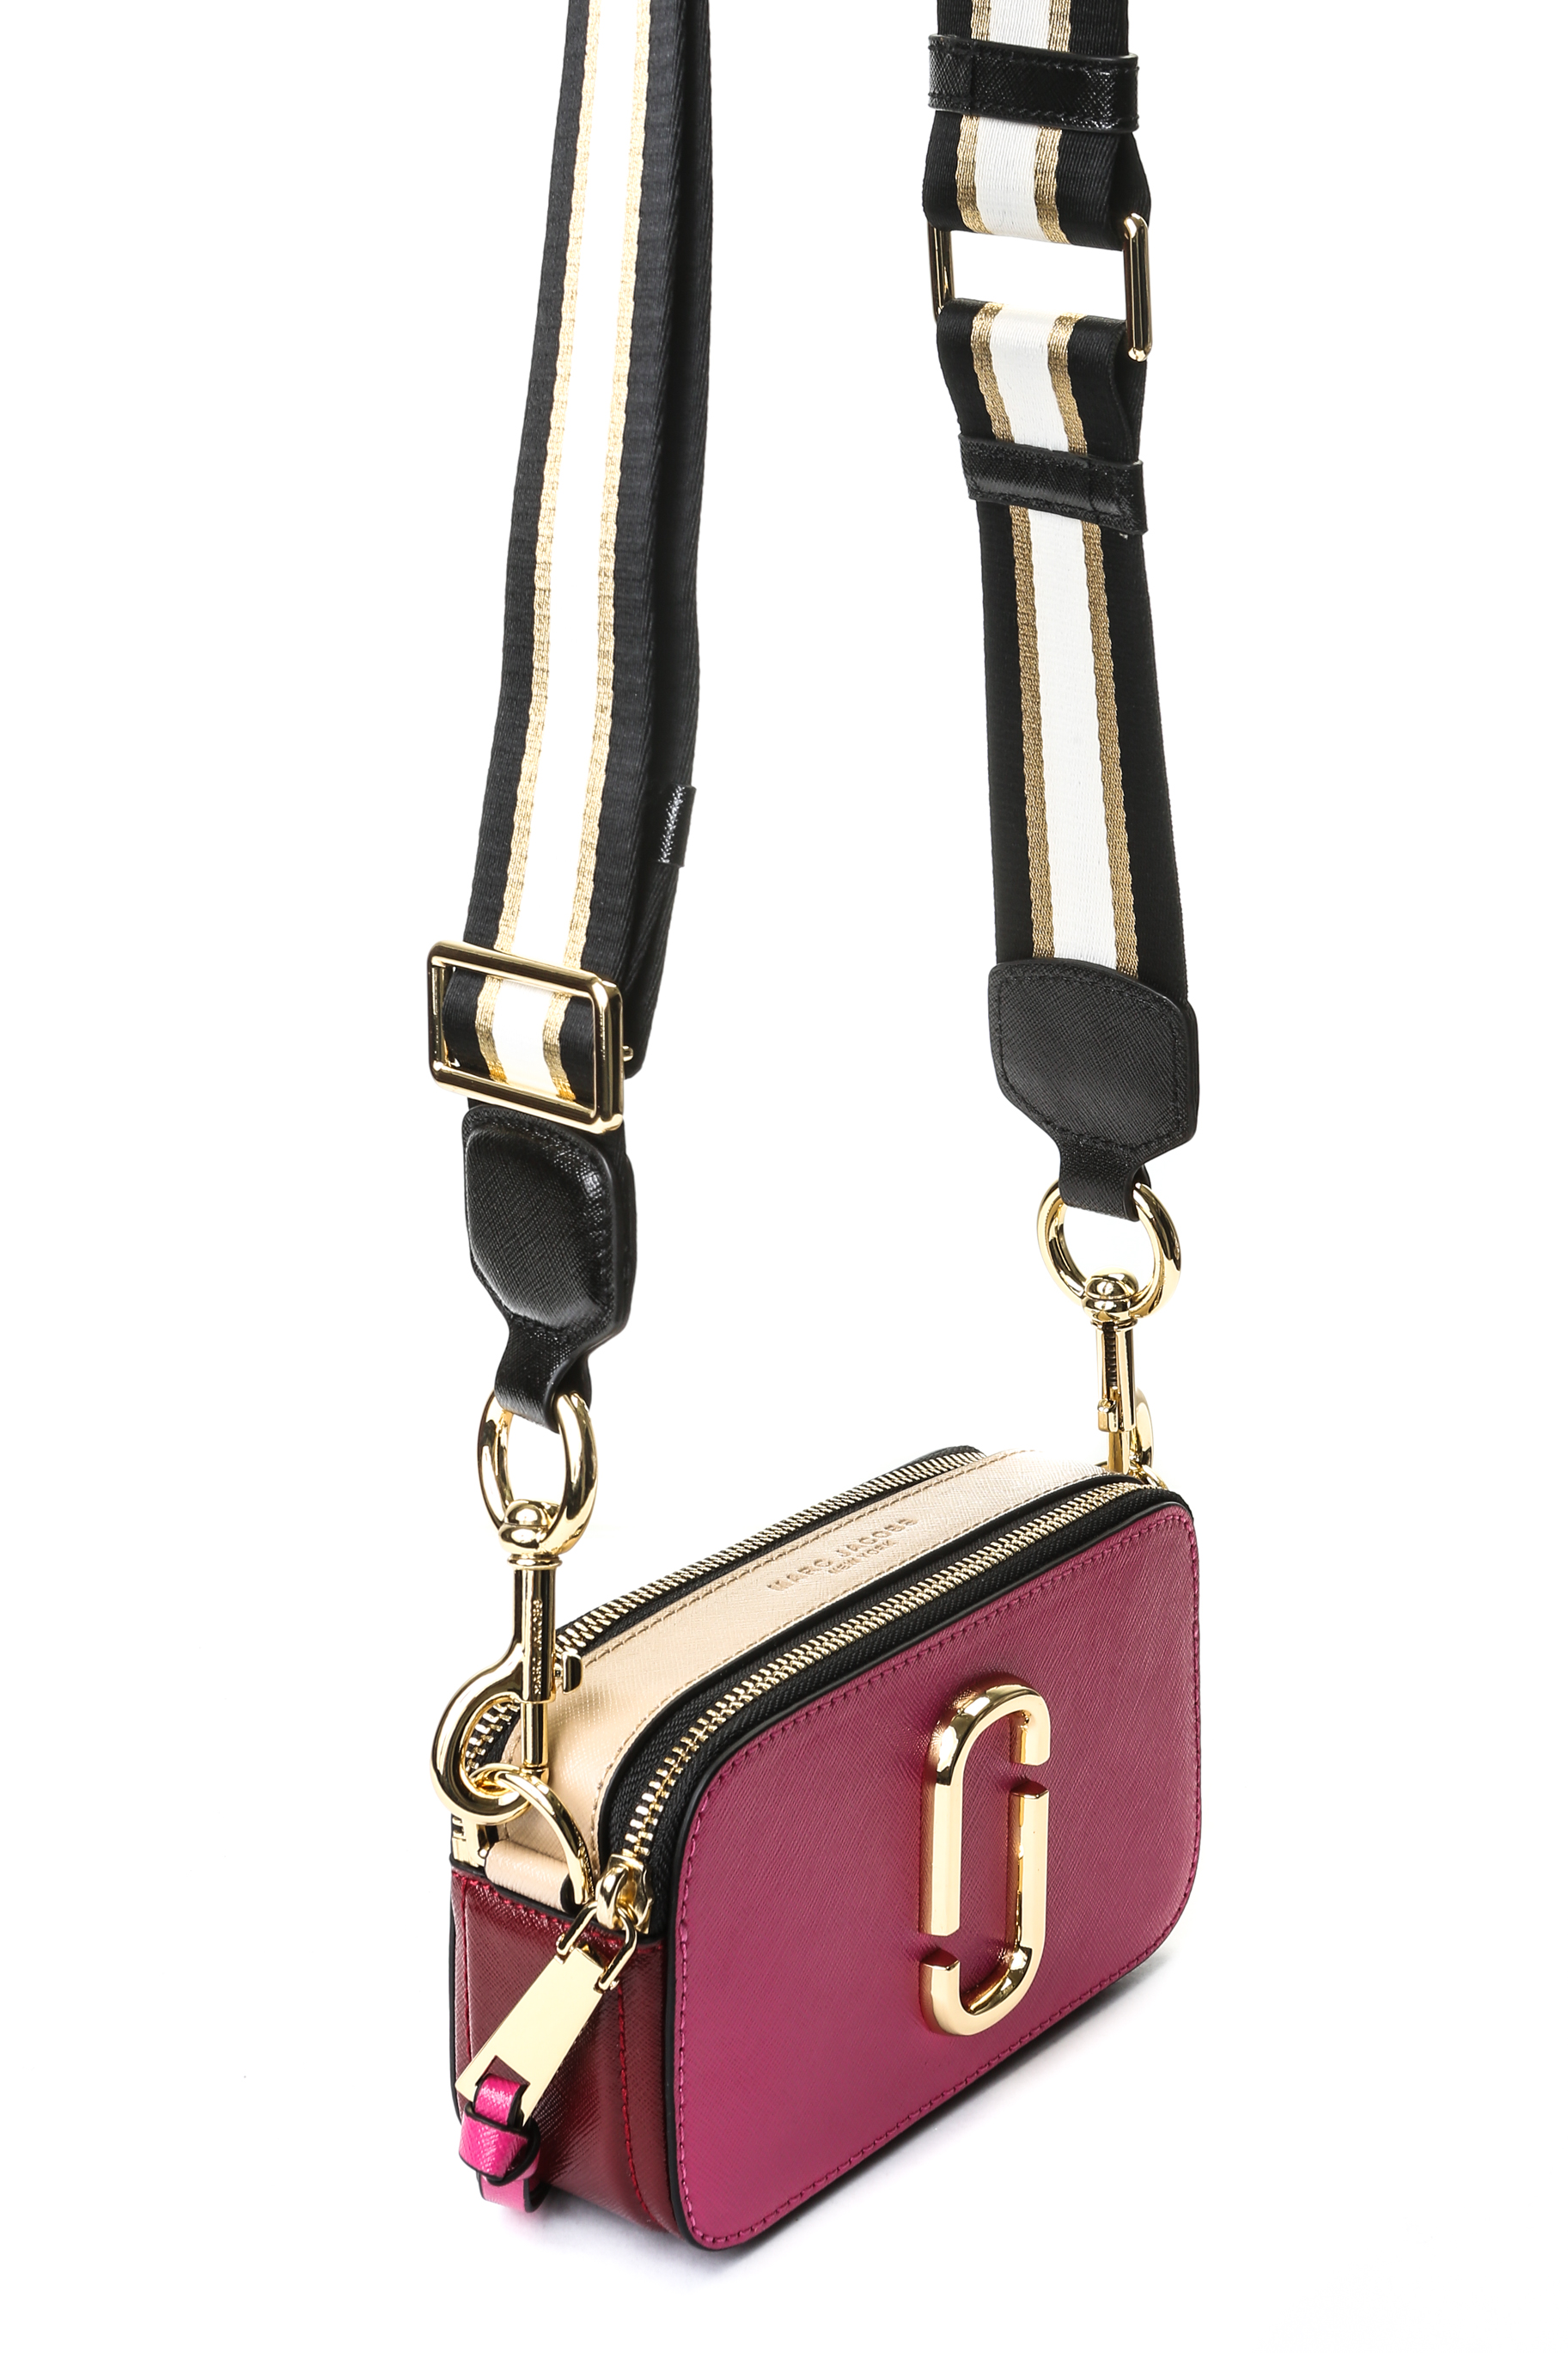 4bf91b74d50e Marc Jacobs Snapshot Camera Bag - Fuchsia/Beige/Purple with Stripe ...